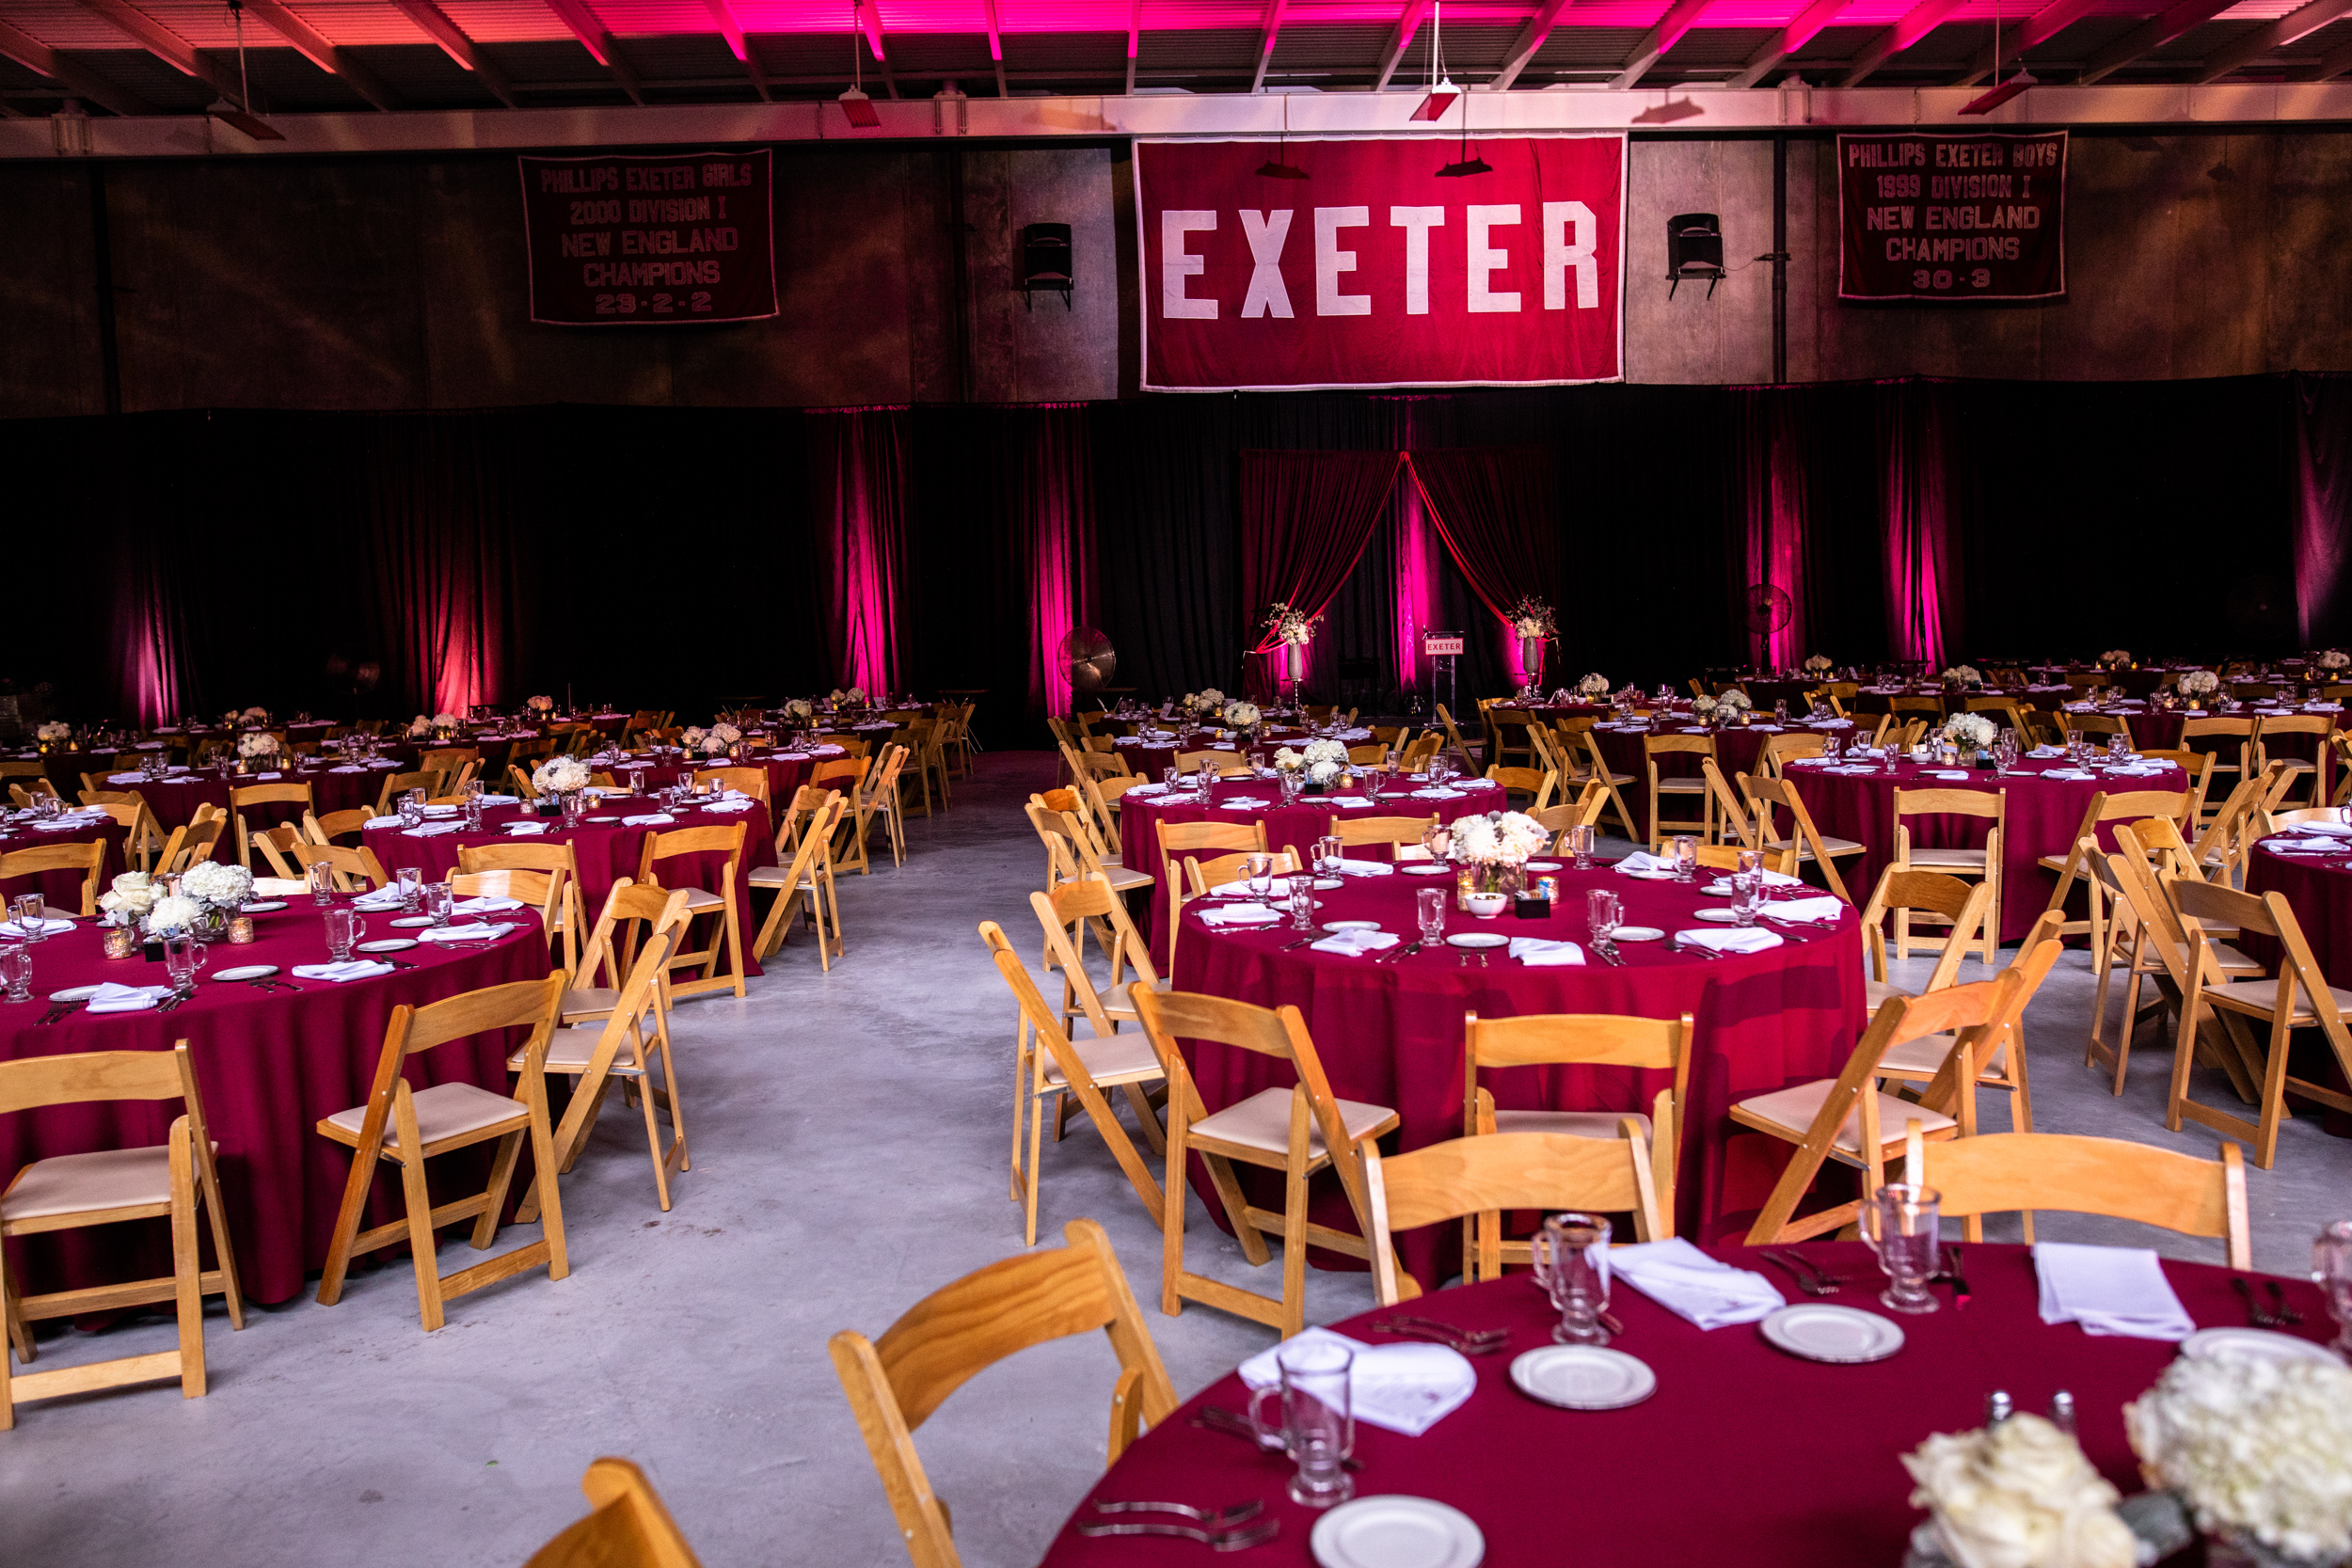 Corporate_Production_Phillips_Exeter_Academy_Pizzuti_Awards_Dinner